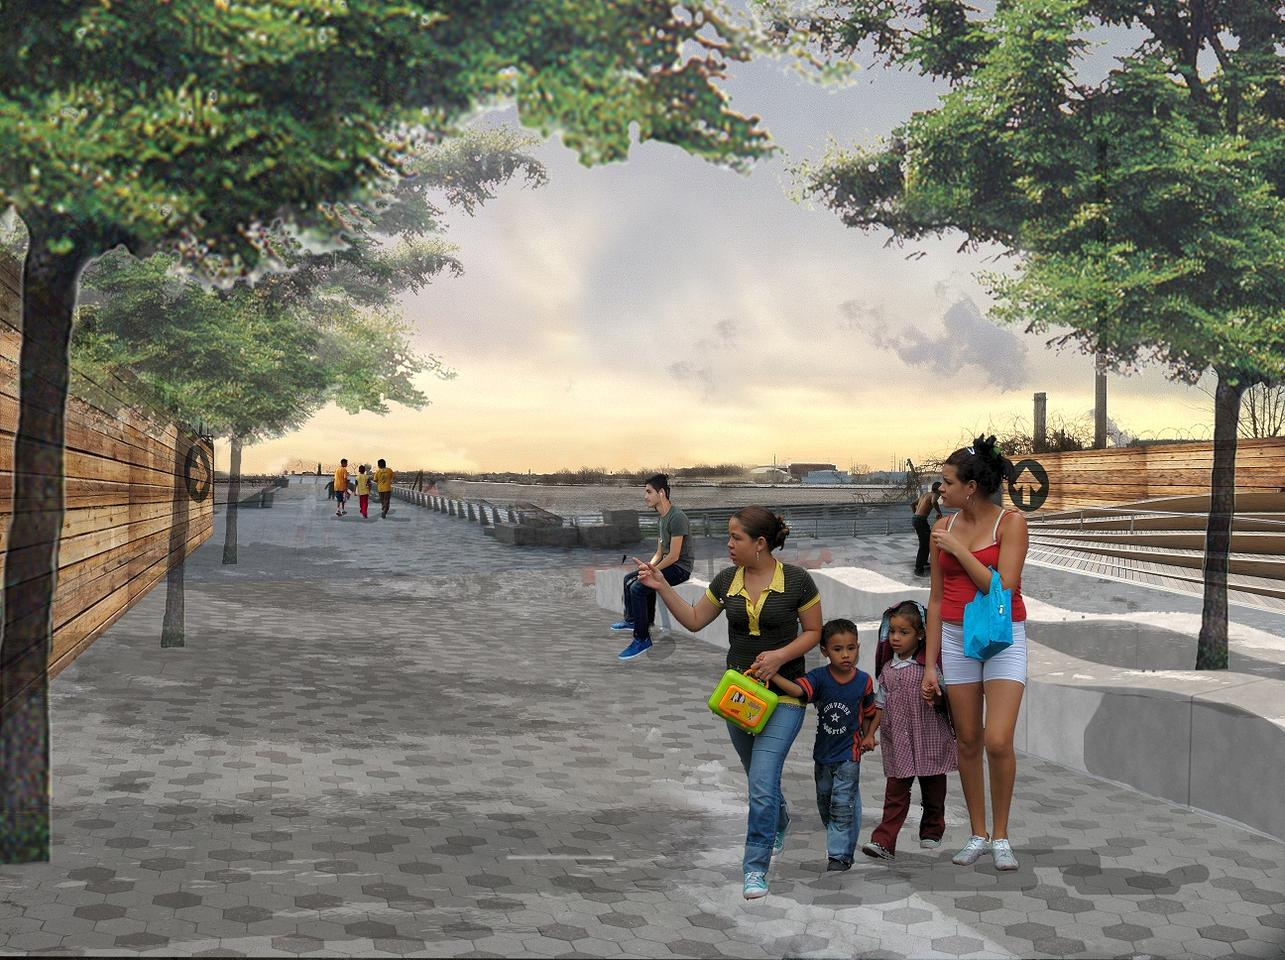 There will be continuous waterfront access from the Randall's Island Connector up to a redeveloped pier at 132nd Street